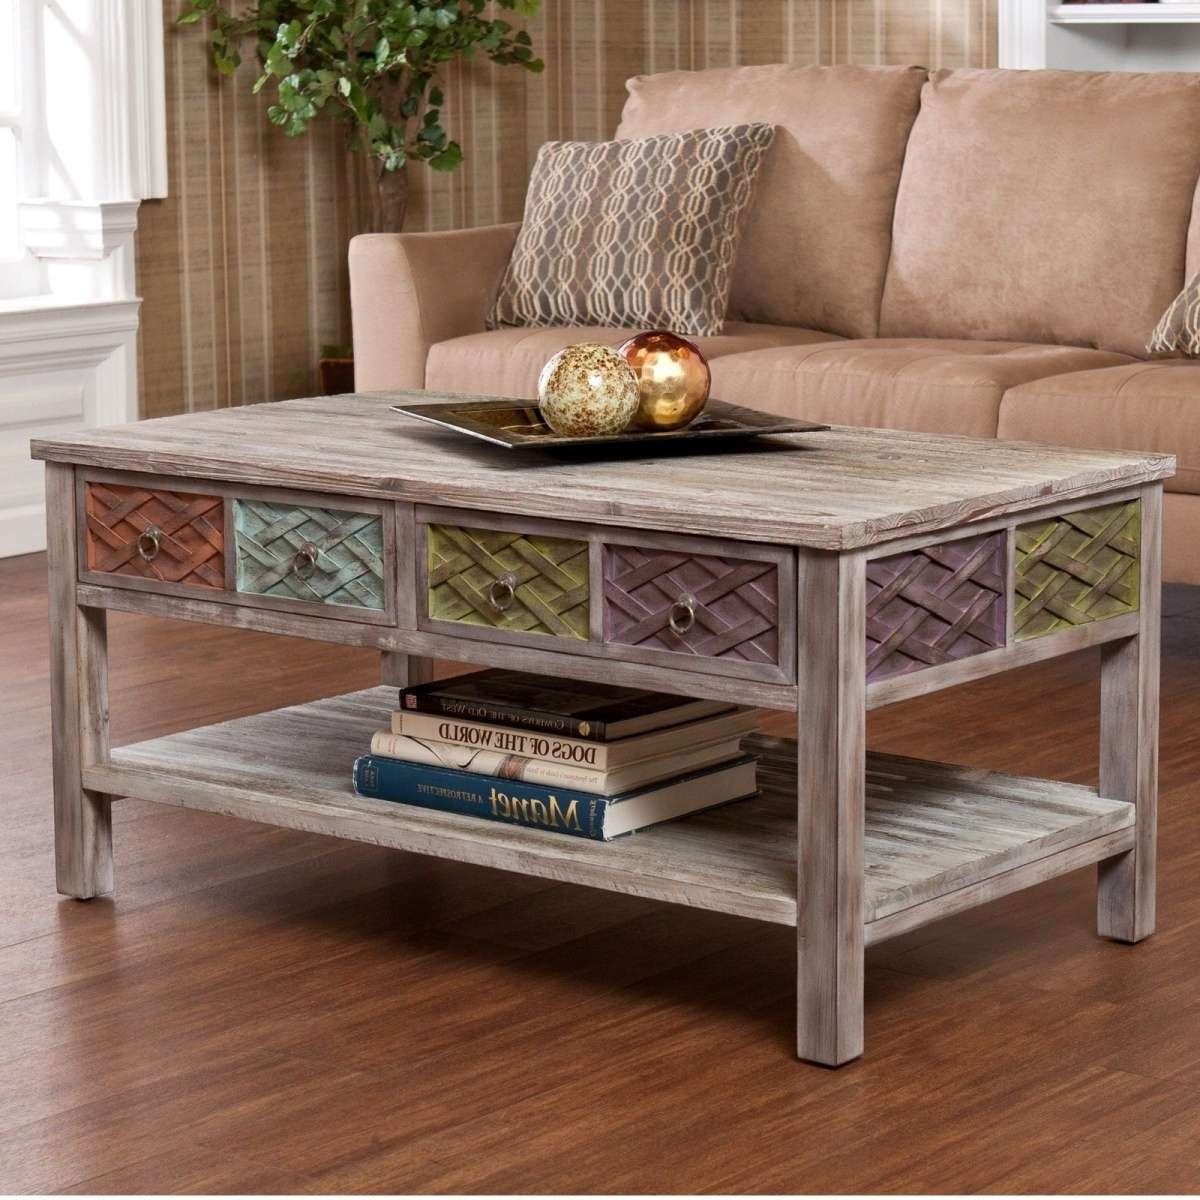 Coffee Table: Glamorous Ideas Of Coffee Table For Small Spaces For Most Recent Space Coffee Tables (View 8 of 20)